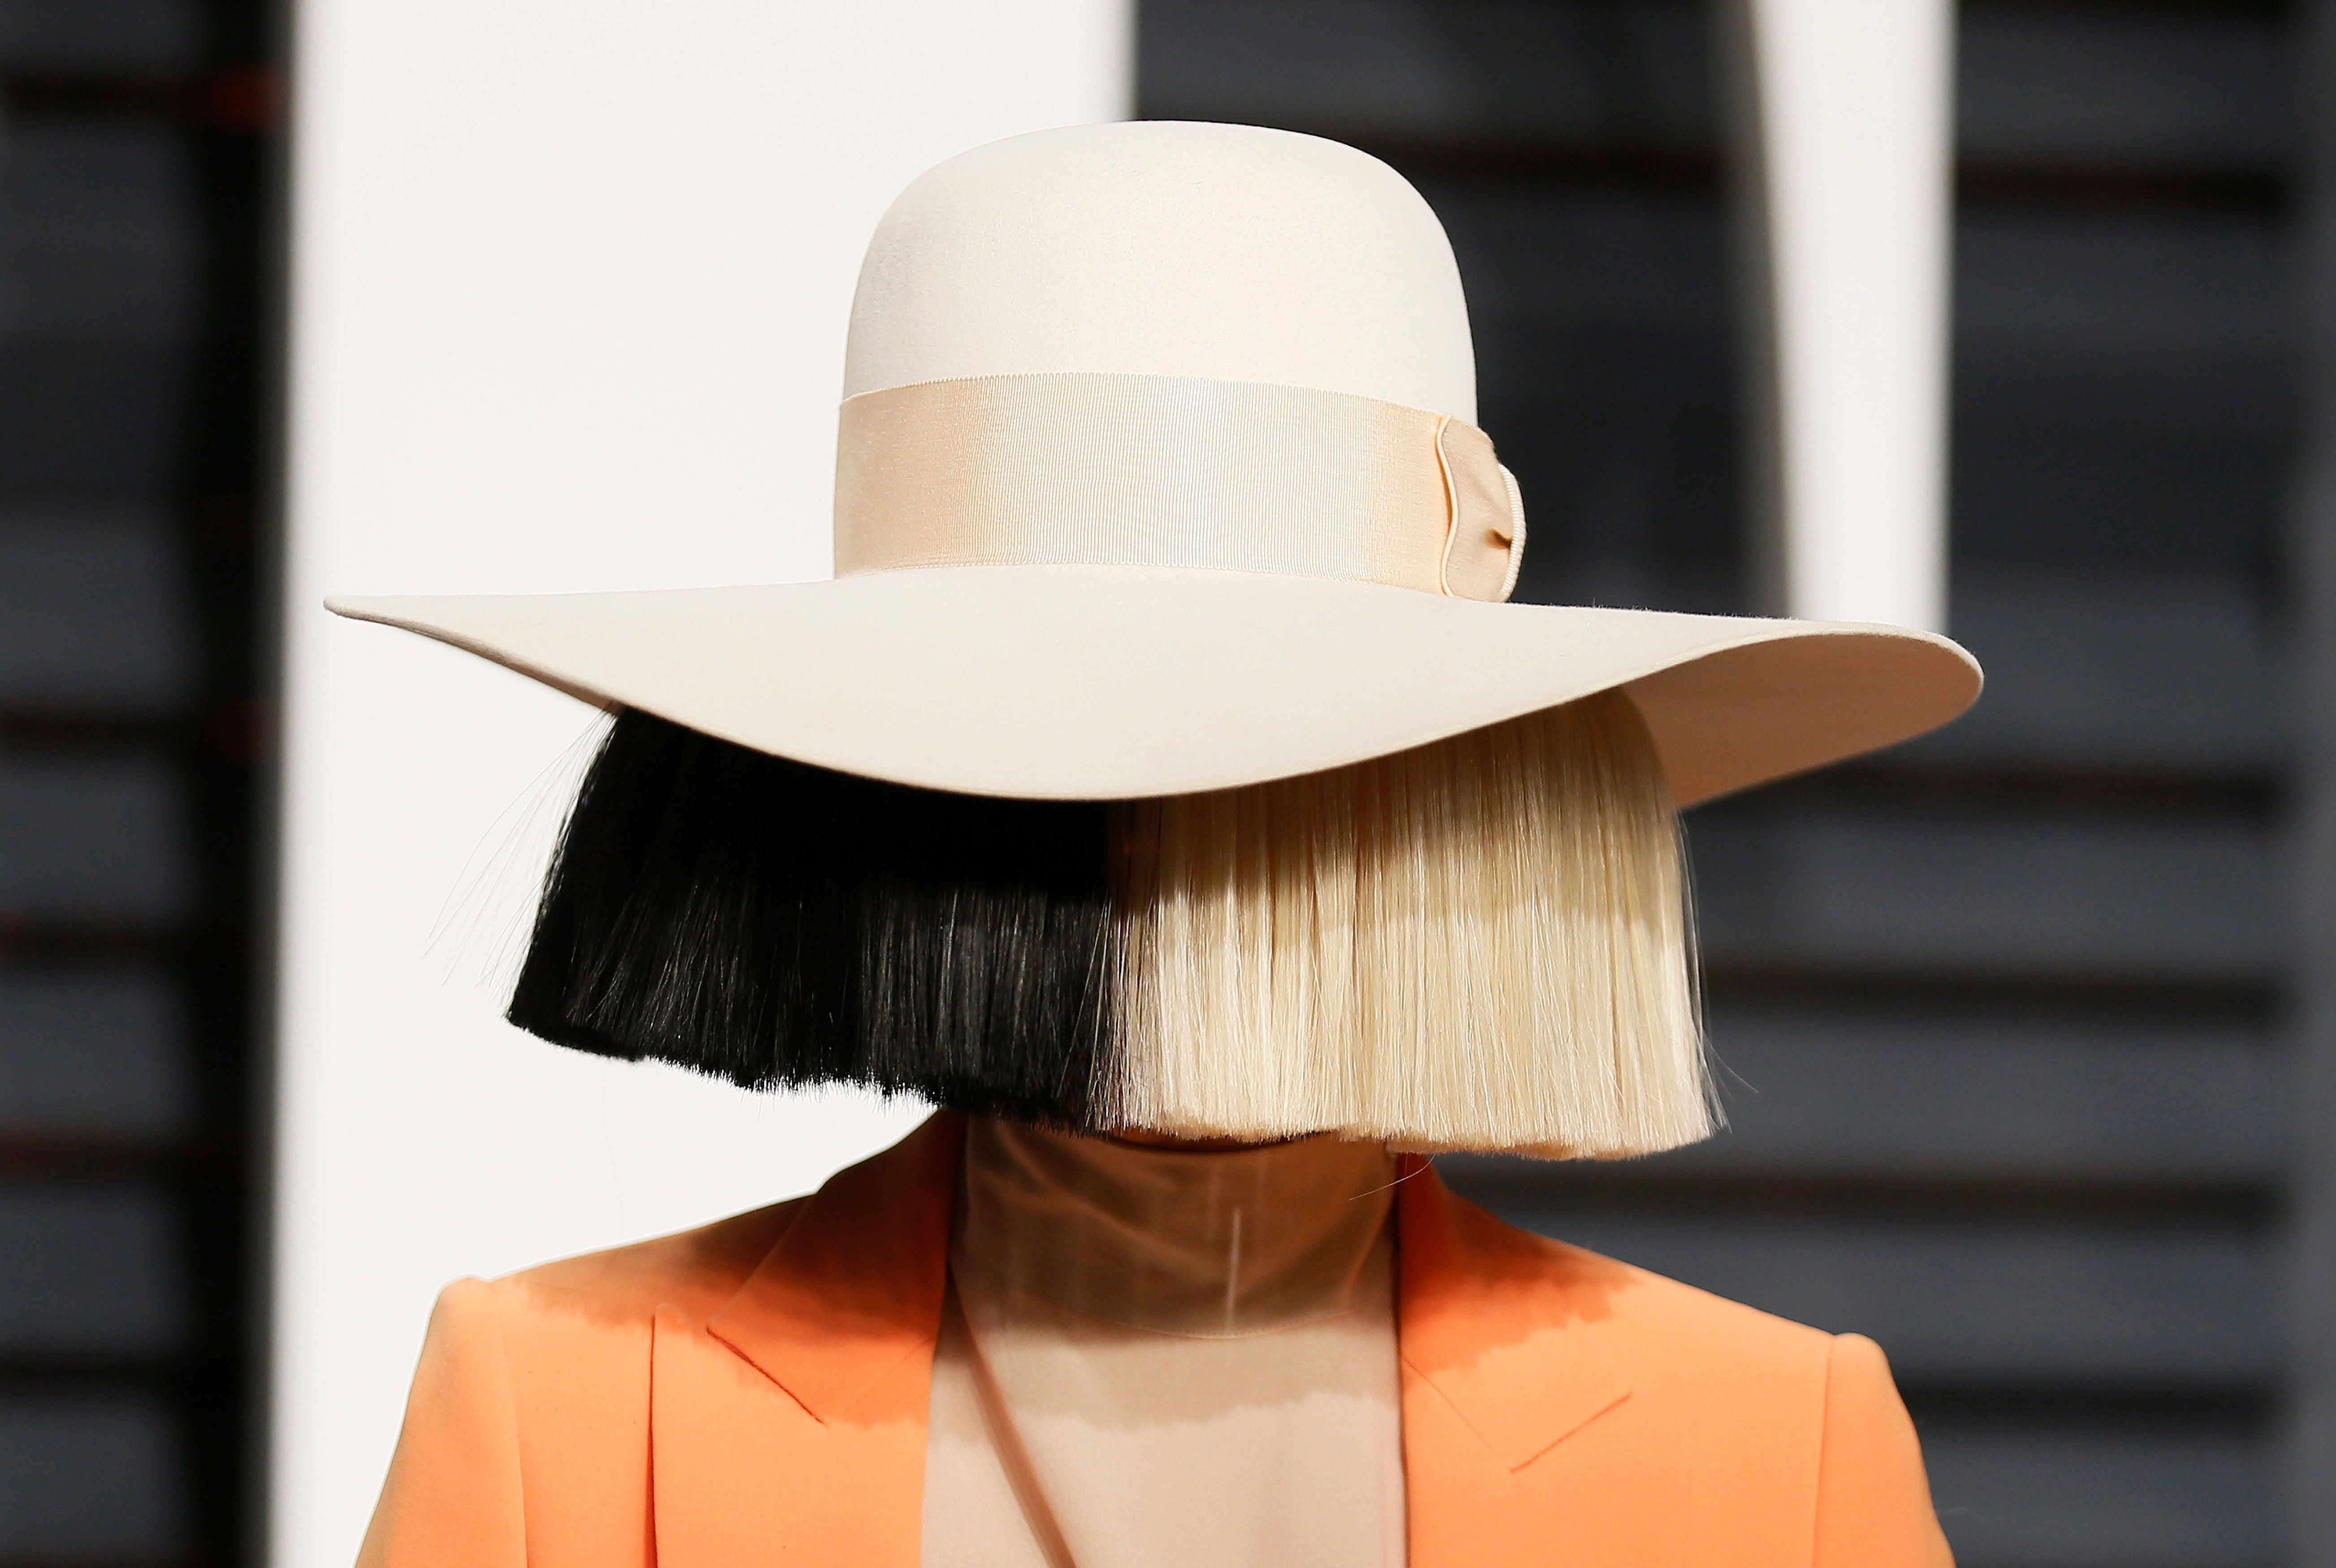 Sia Releases A Nude Photo Of Herself Before A Creep Can Sell